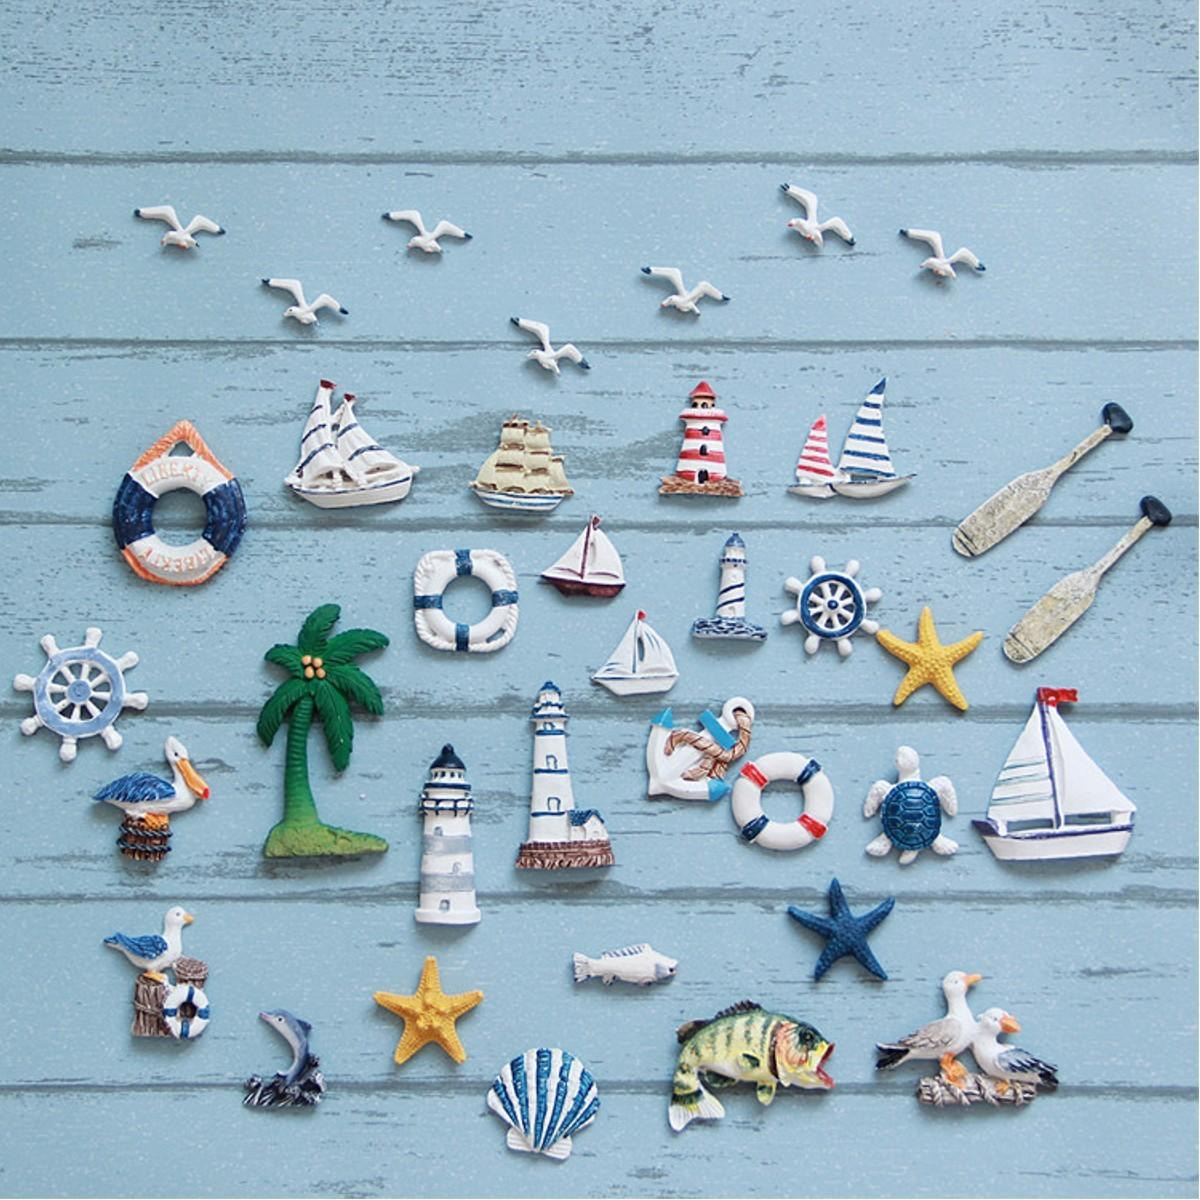 45 Inspiring Nautical Themed Diy Fridge Magnets That Look So Creepy Spooky Trends For 2021 Beautiful Decoratorist